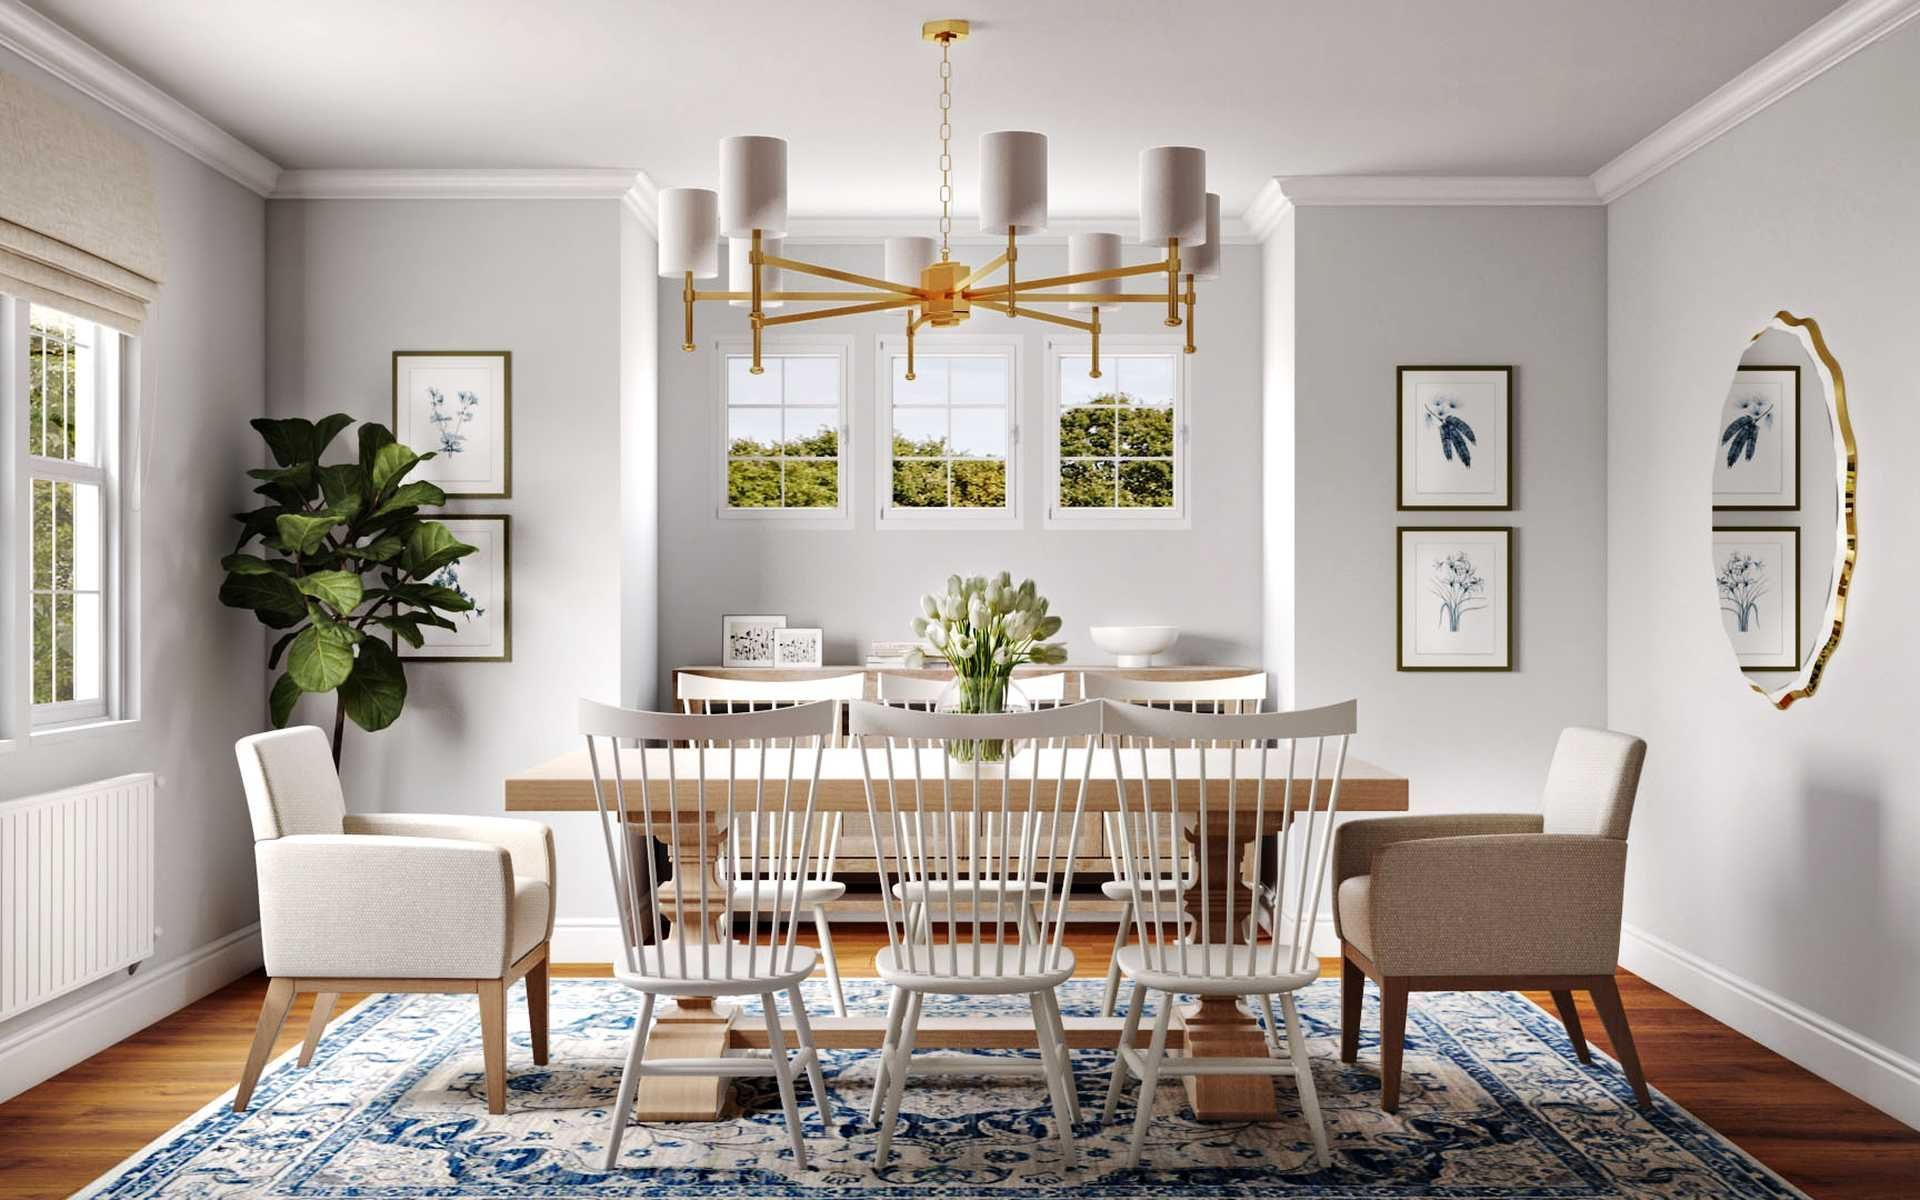 Classic Transitional Dining Room Design By Havenly Interior Designer Katie In 2021 Dining Room Design Online Interior Design Transitional Dining Room Designs